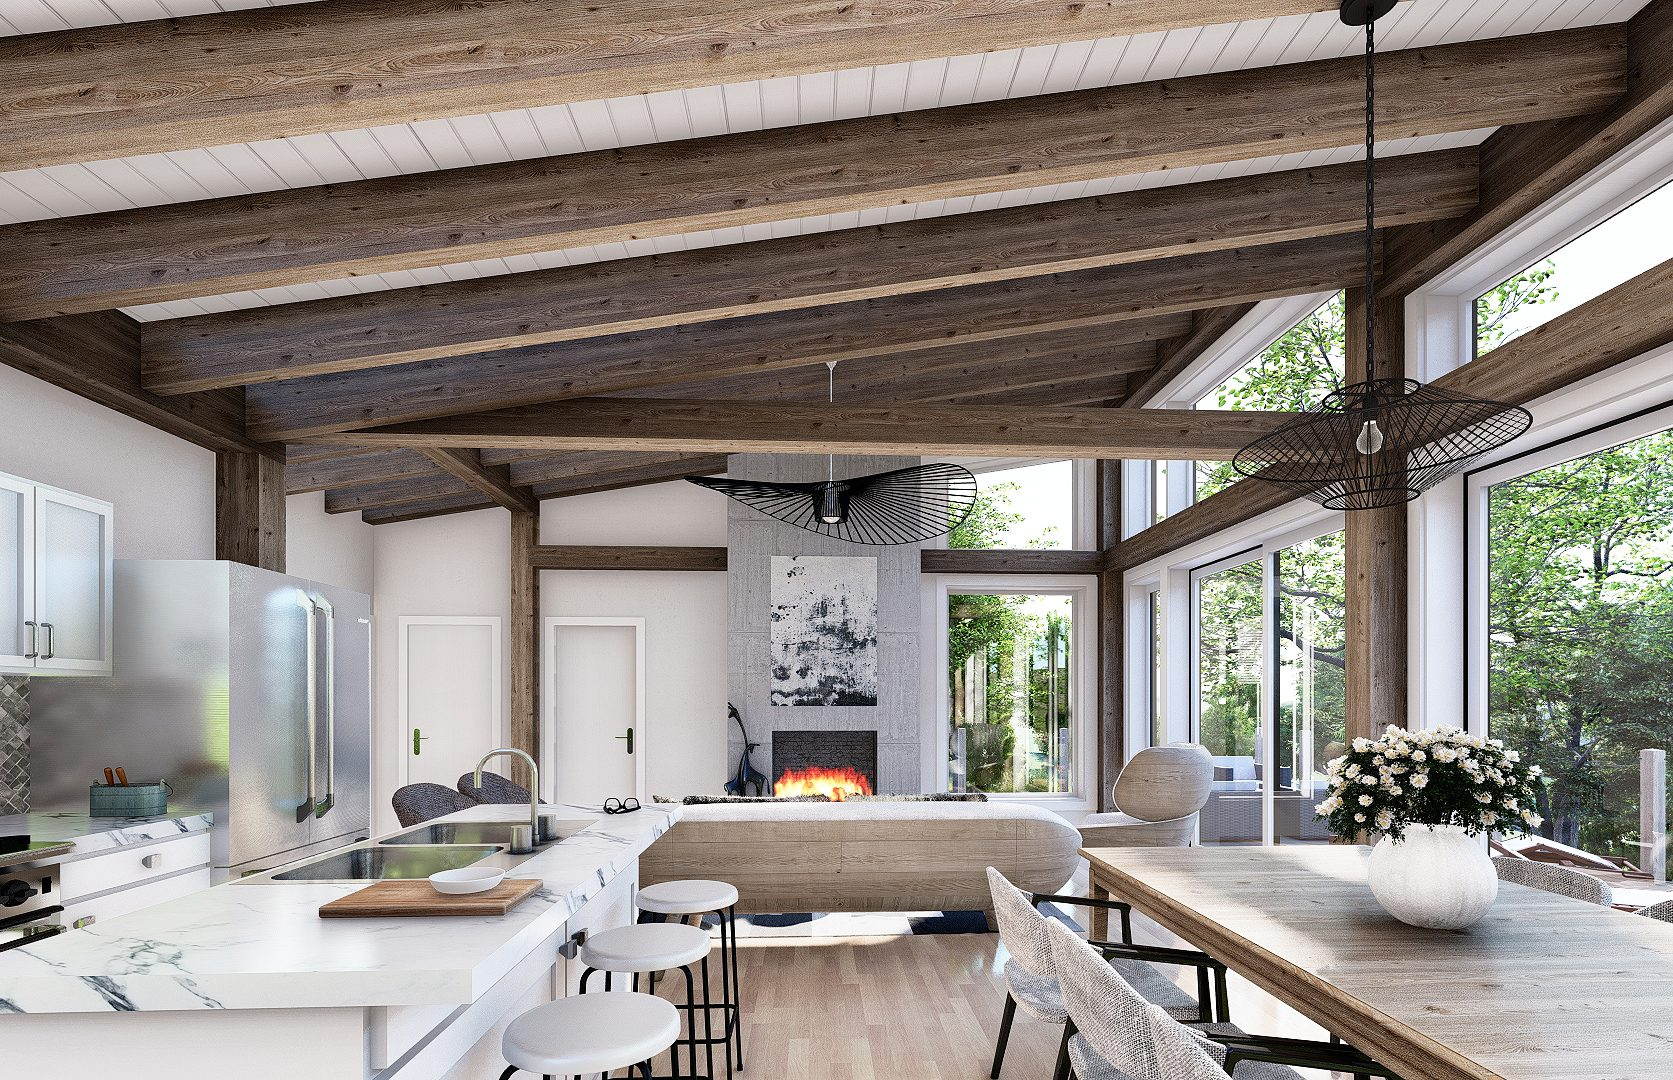 Normerica Timber Frames, House Plan, The Laurentian, Interior, Kitchen, Dining Room, Living Room, Fireplace, Open Concept